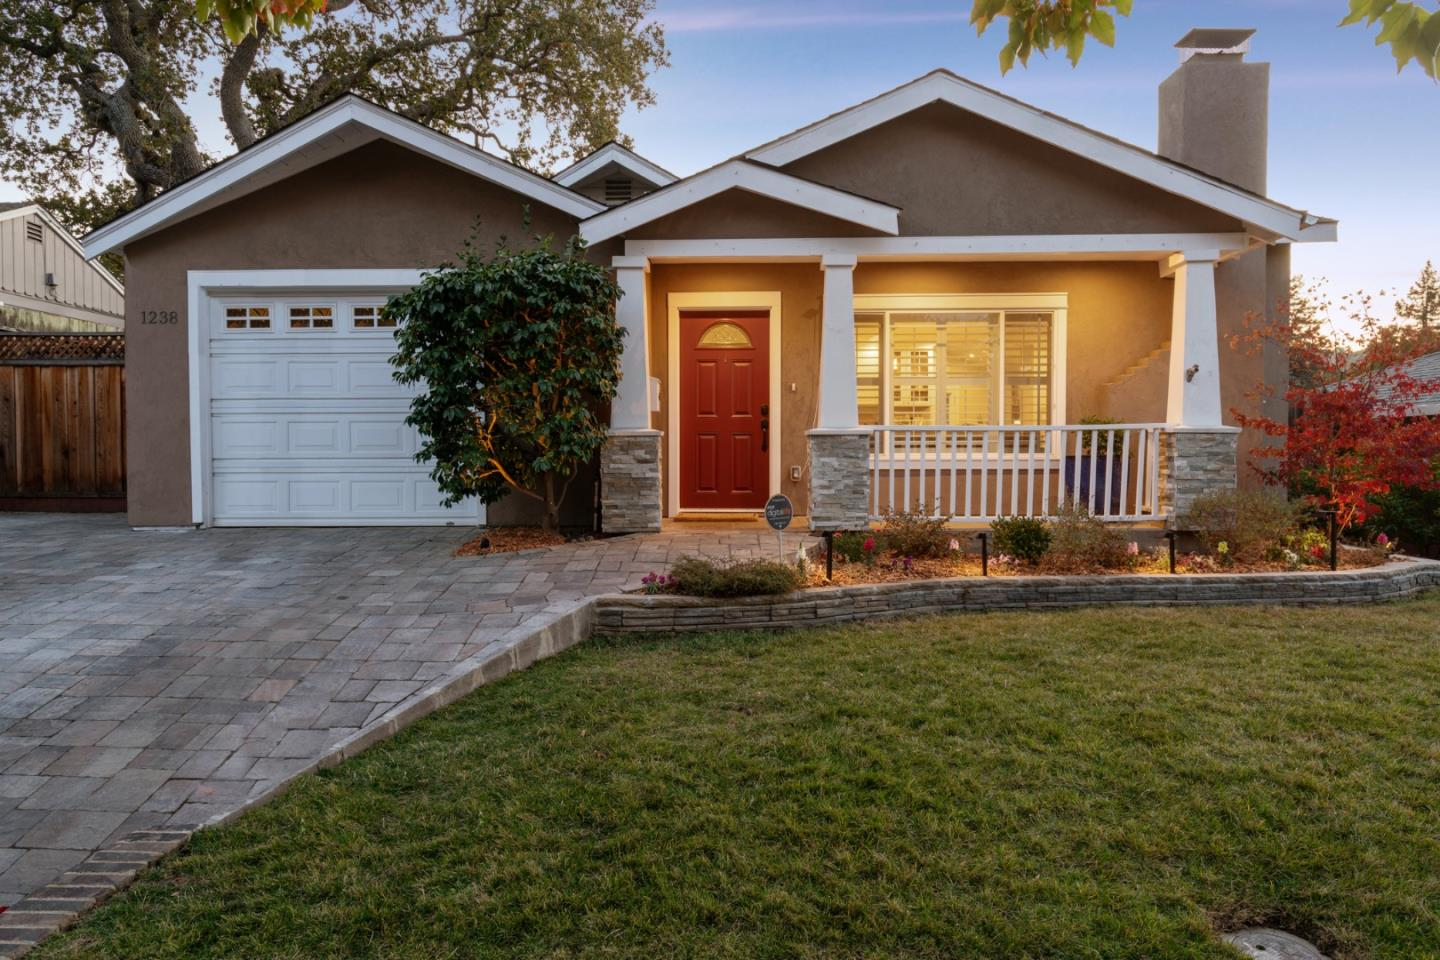 1238 Connecticut DR, Redwood City, California